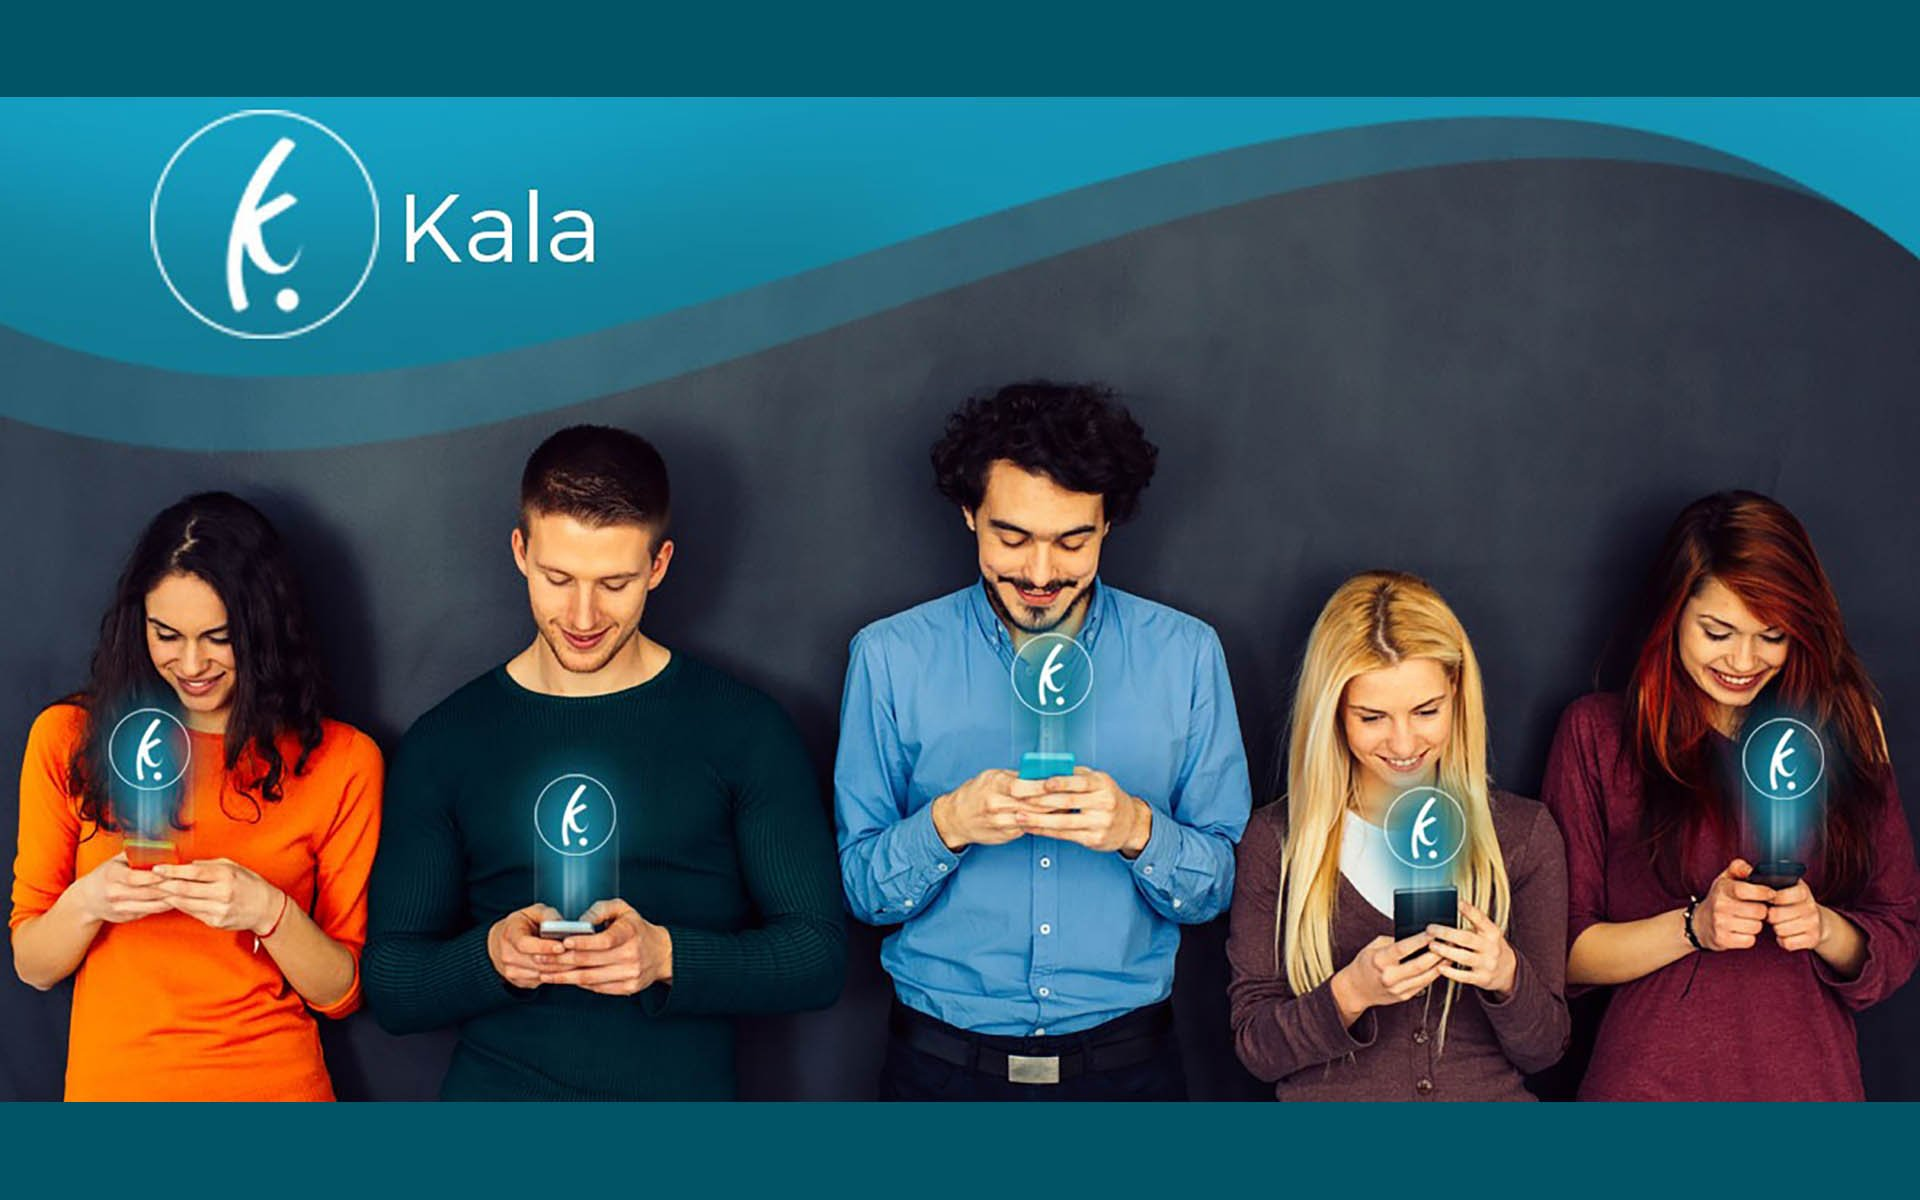 Kala: The New Cryptocurrency With Immediate Inherent Value